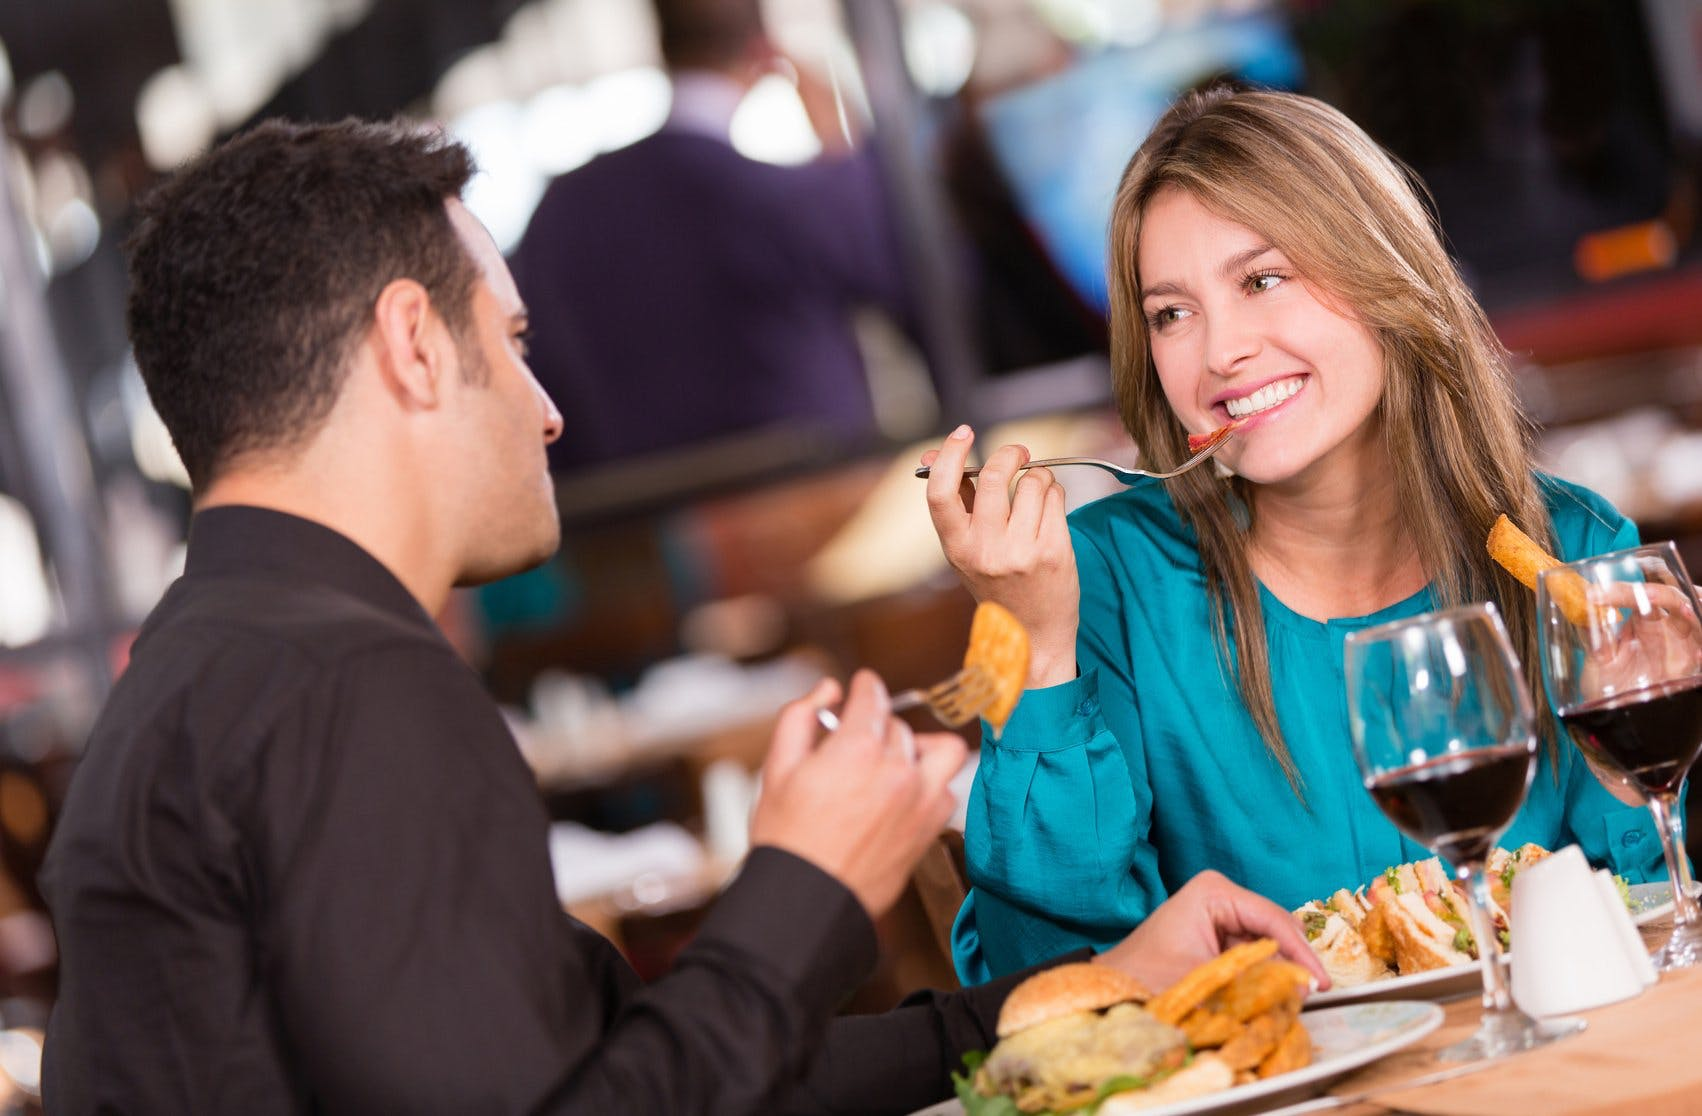 What Every Man Should Avoid on the First Date